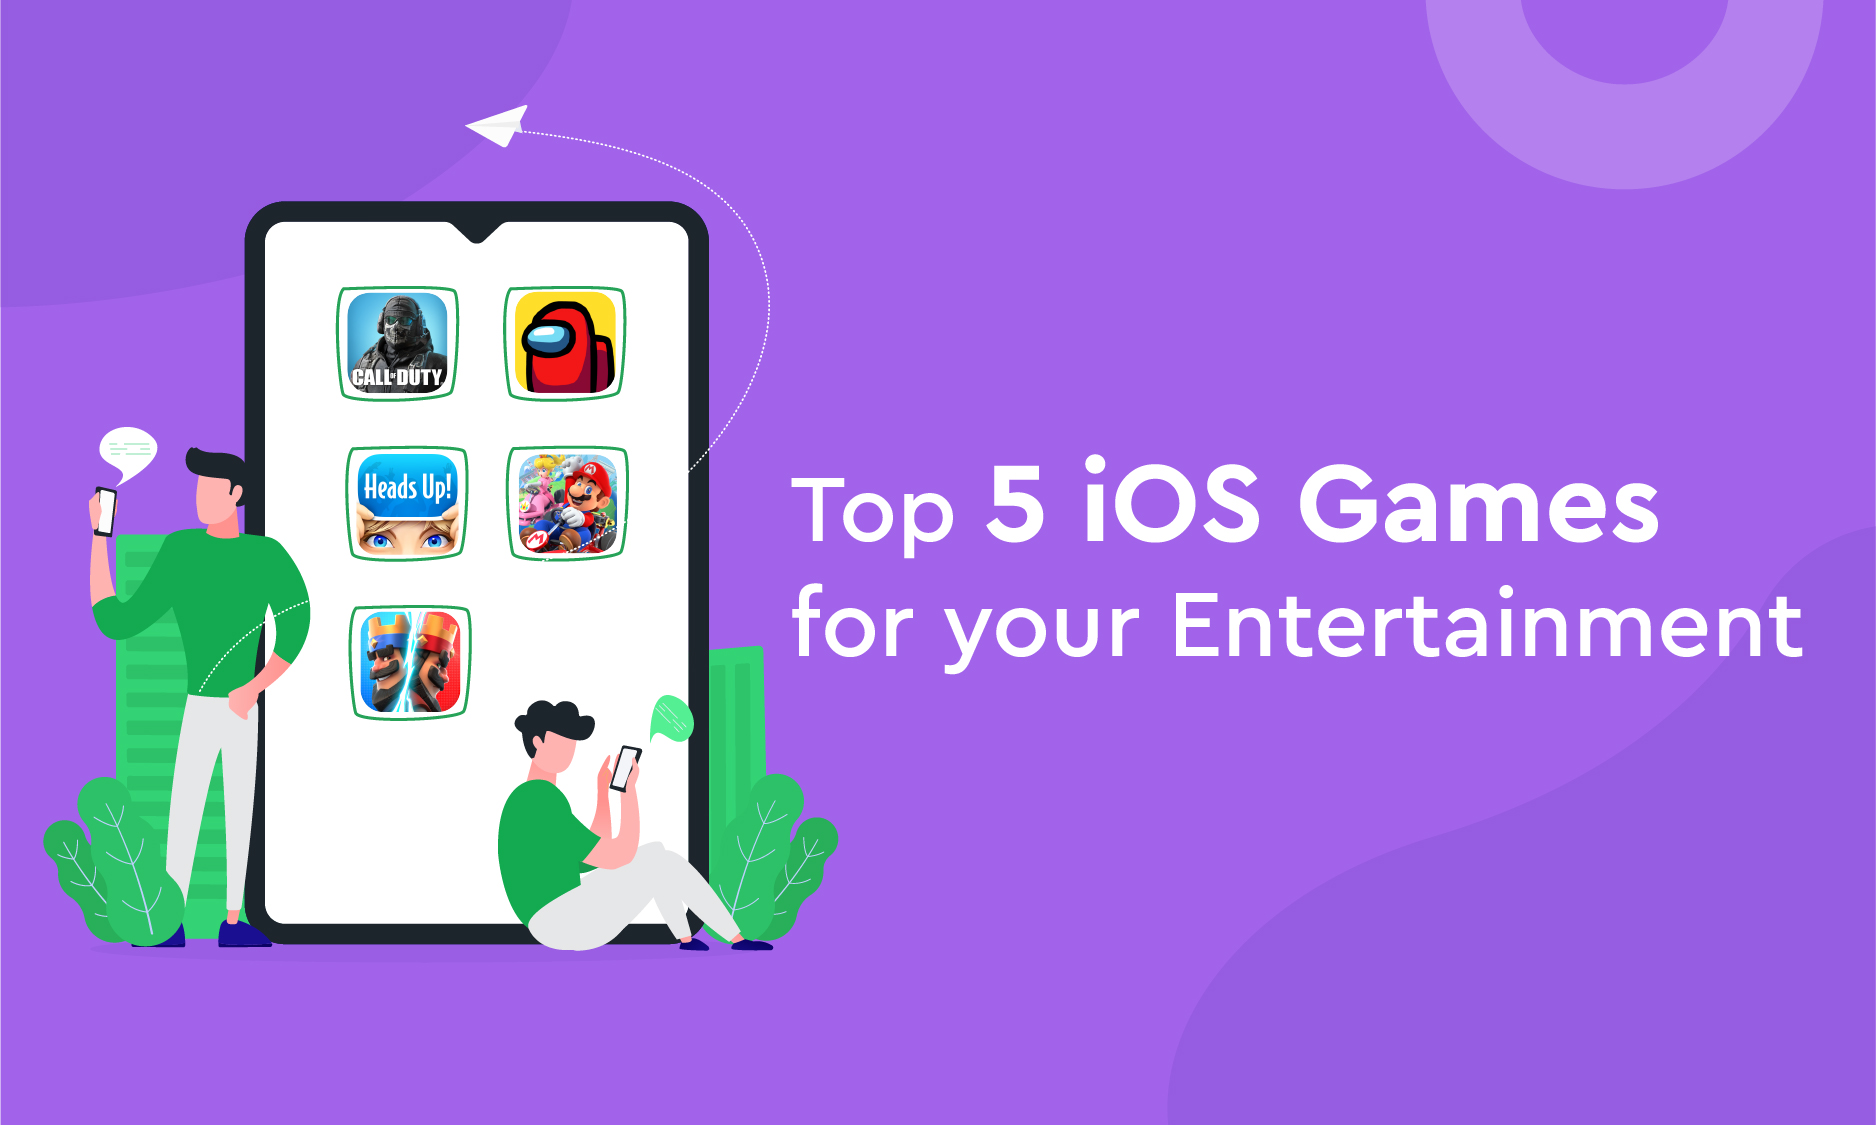 Top 5 iOS Games for your Entertainment